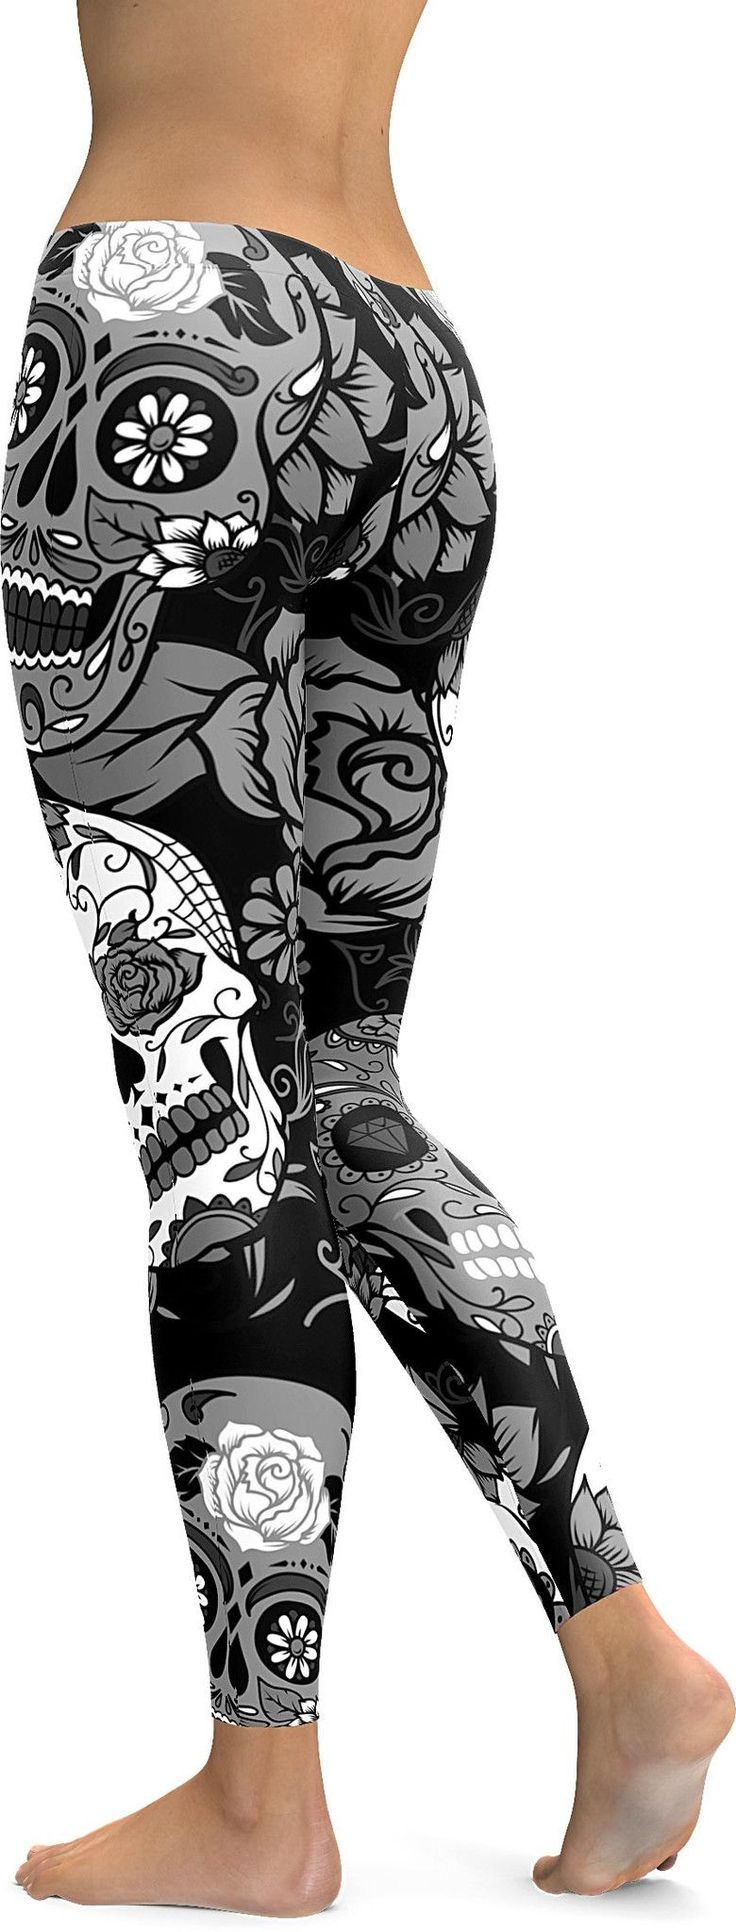 Black & White Sugar Skull Leggings - GearBunch Leggings / Yoga Pants